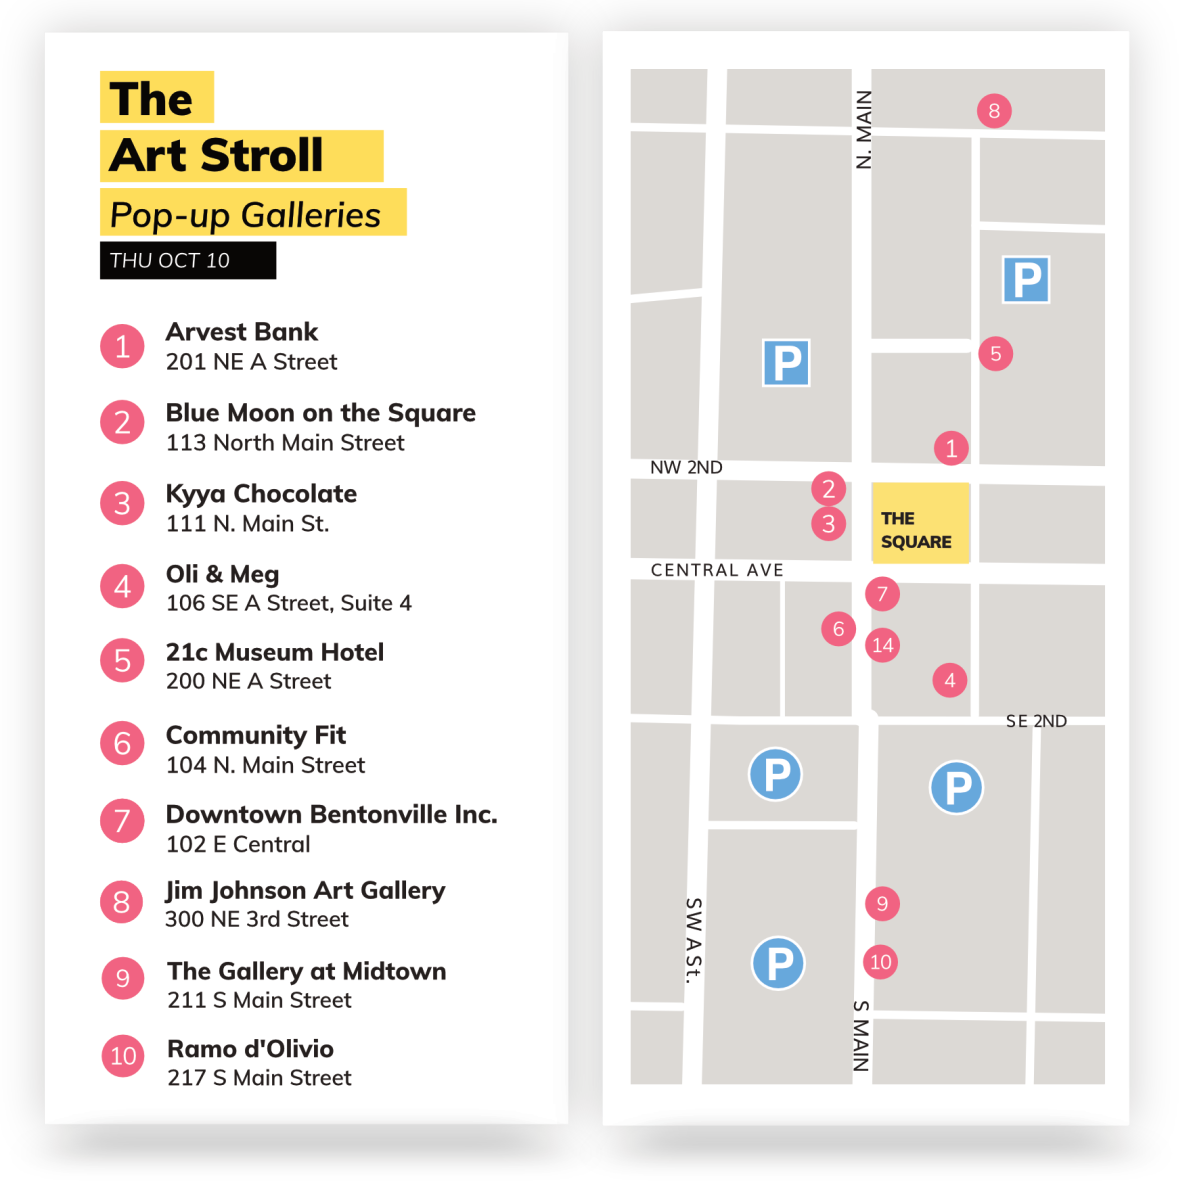 A map of all participating Art Stroll locations